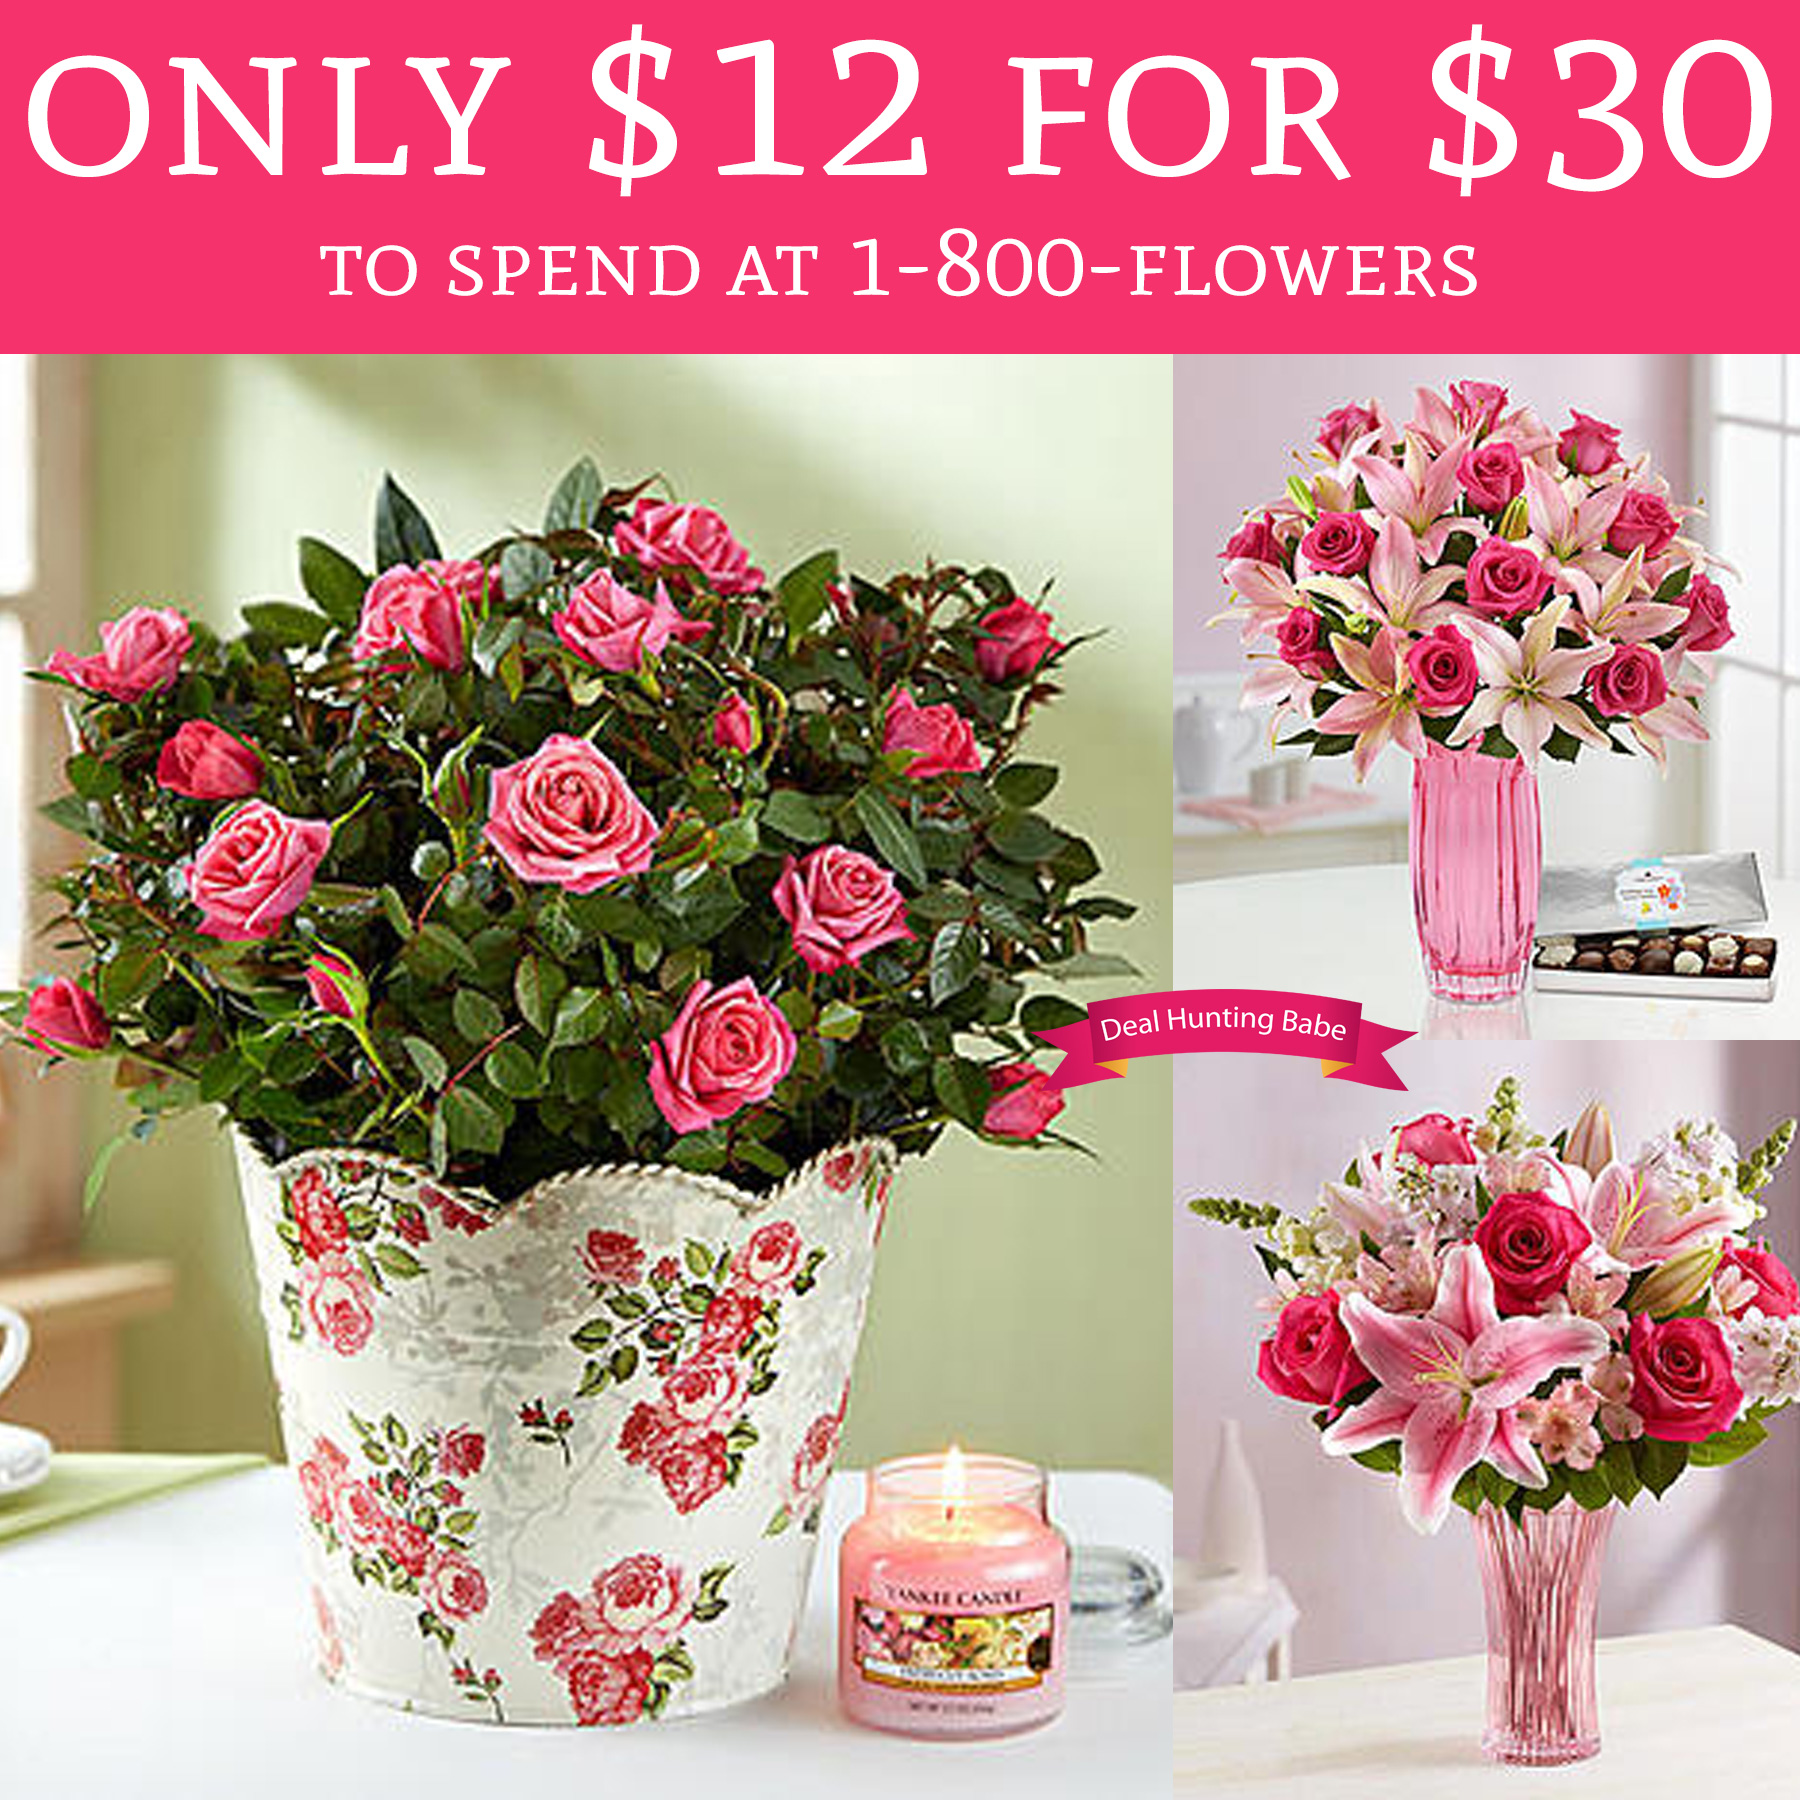 HOT ly $12 for $30 To Spend At 1 800 Flowers Deal Hunting Babe